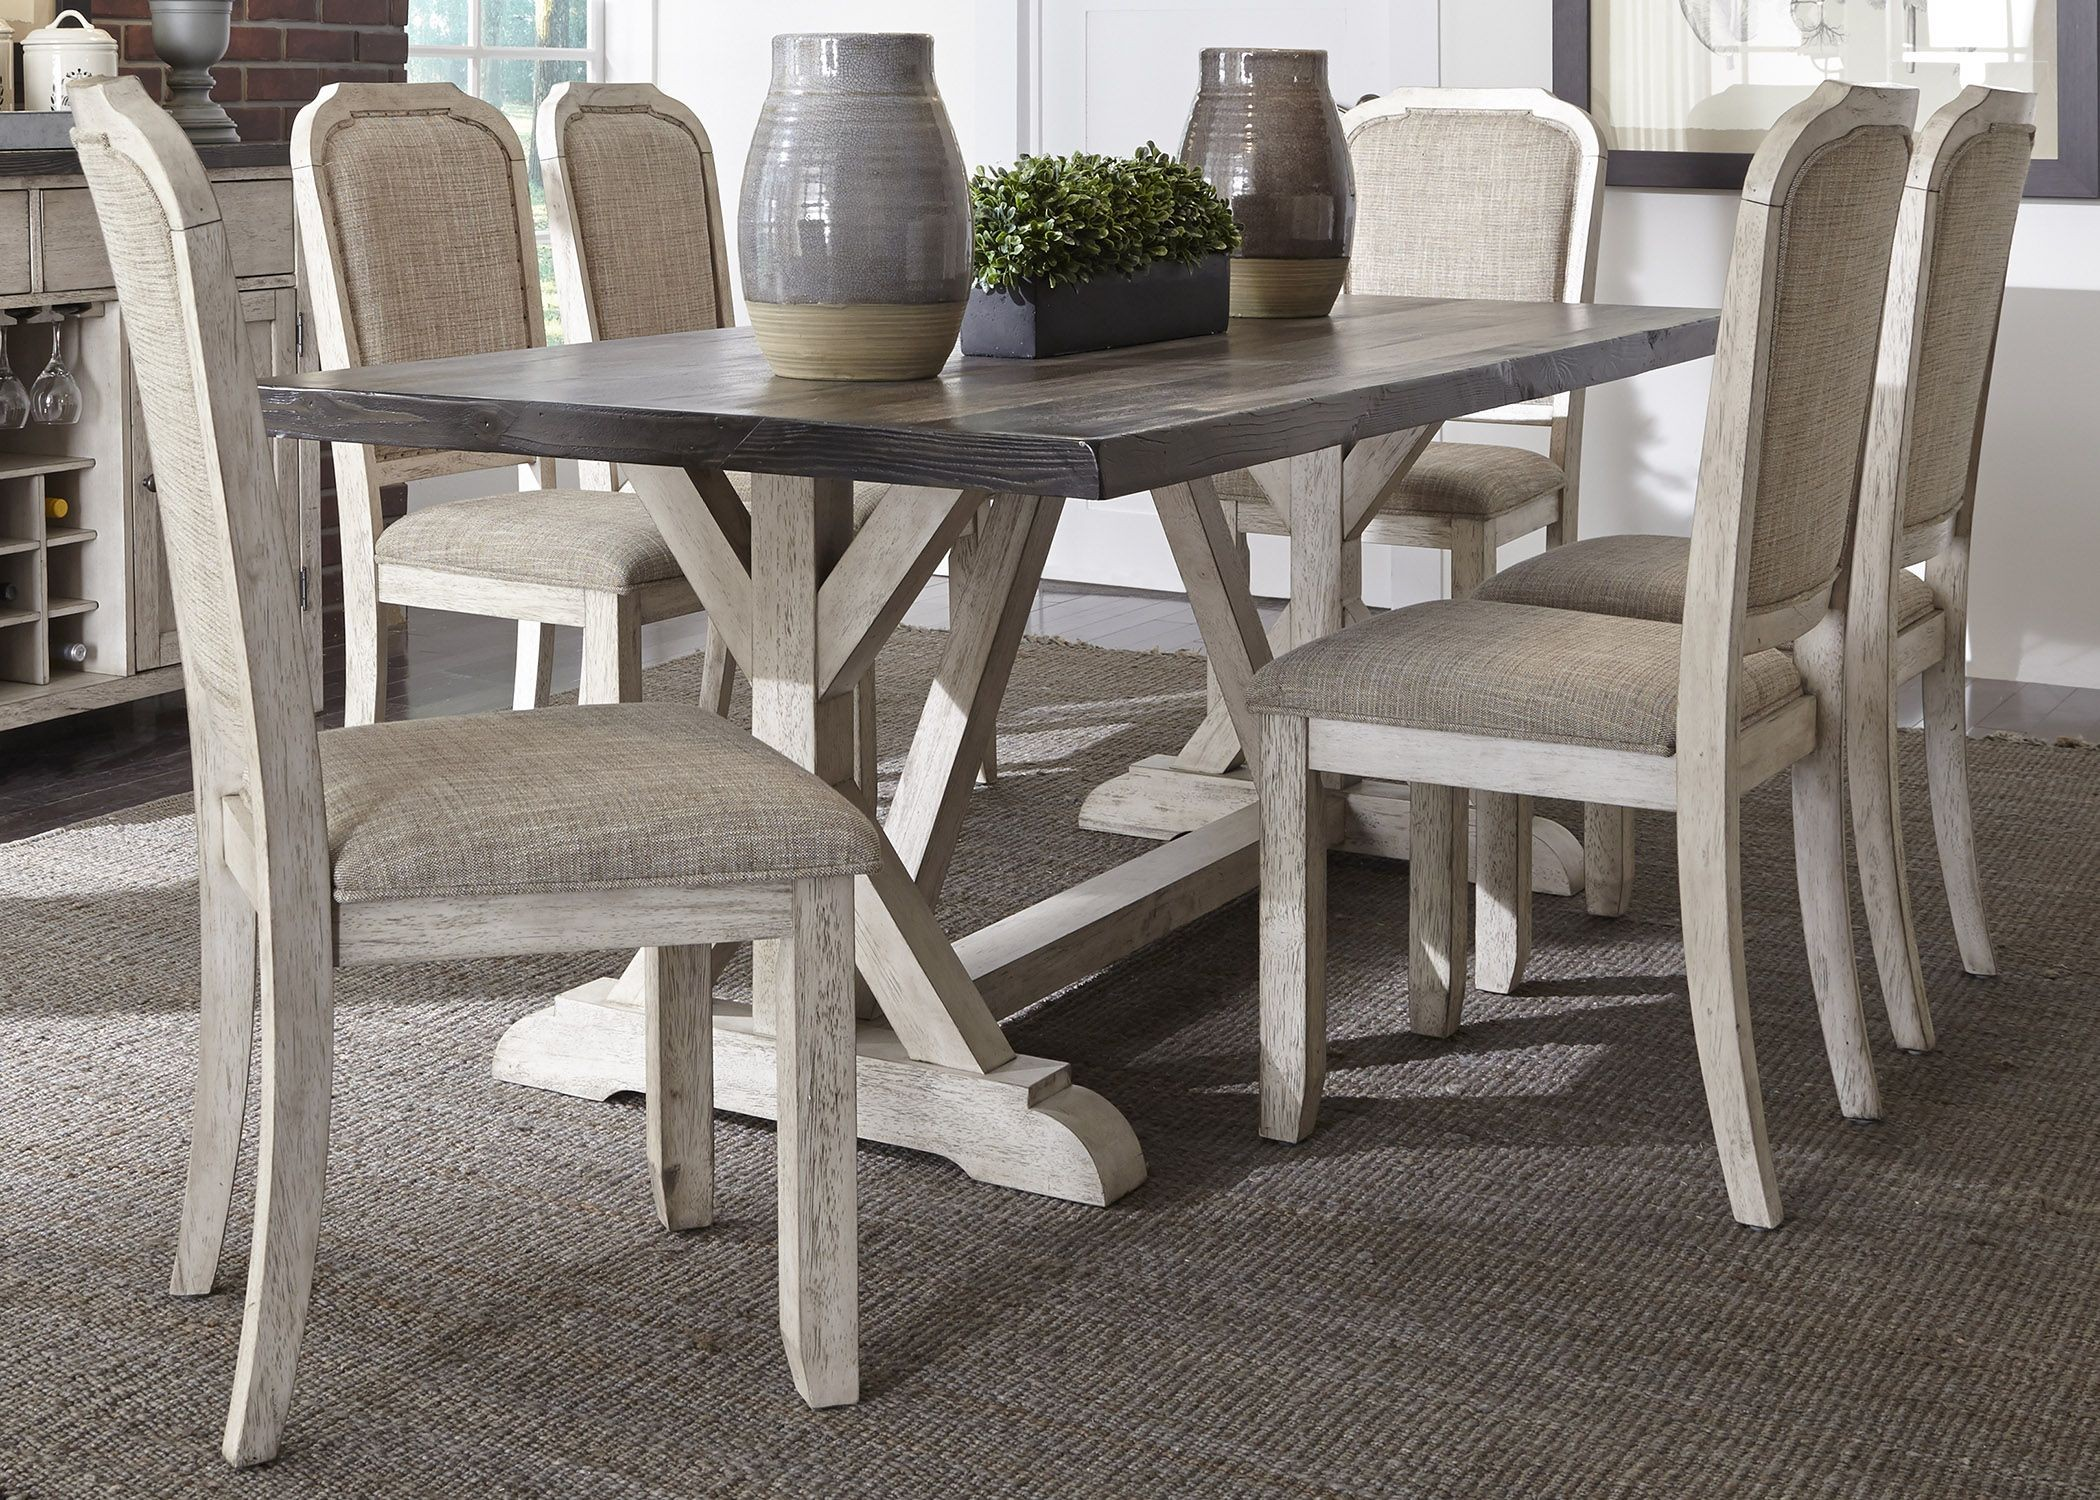 Willowrun Rustic White Trestle Dining Room Set, 619t3878. Used Dining Table For Sale. Concrete Dining Tables. Desk Bed Combo Ikea. Expandable Round Dining Table. Executive Desks Uk. Cheap Cool Desks. Arne Vodder Desk. Amazon Office Desks